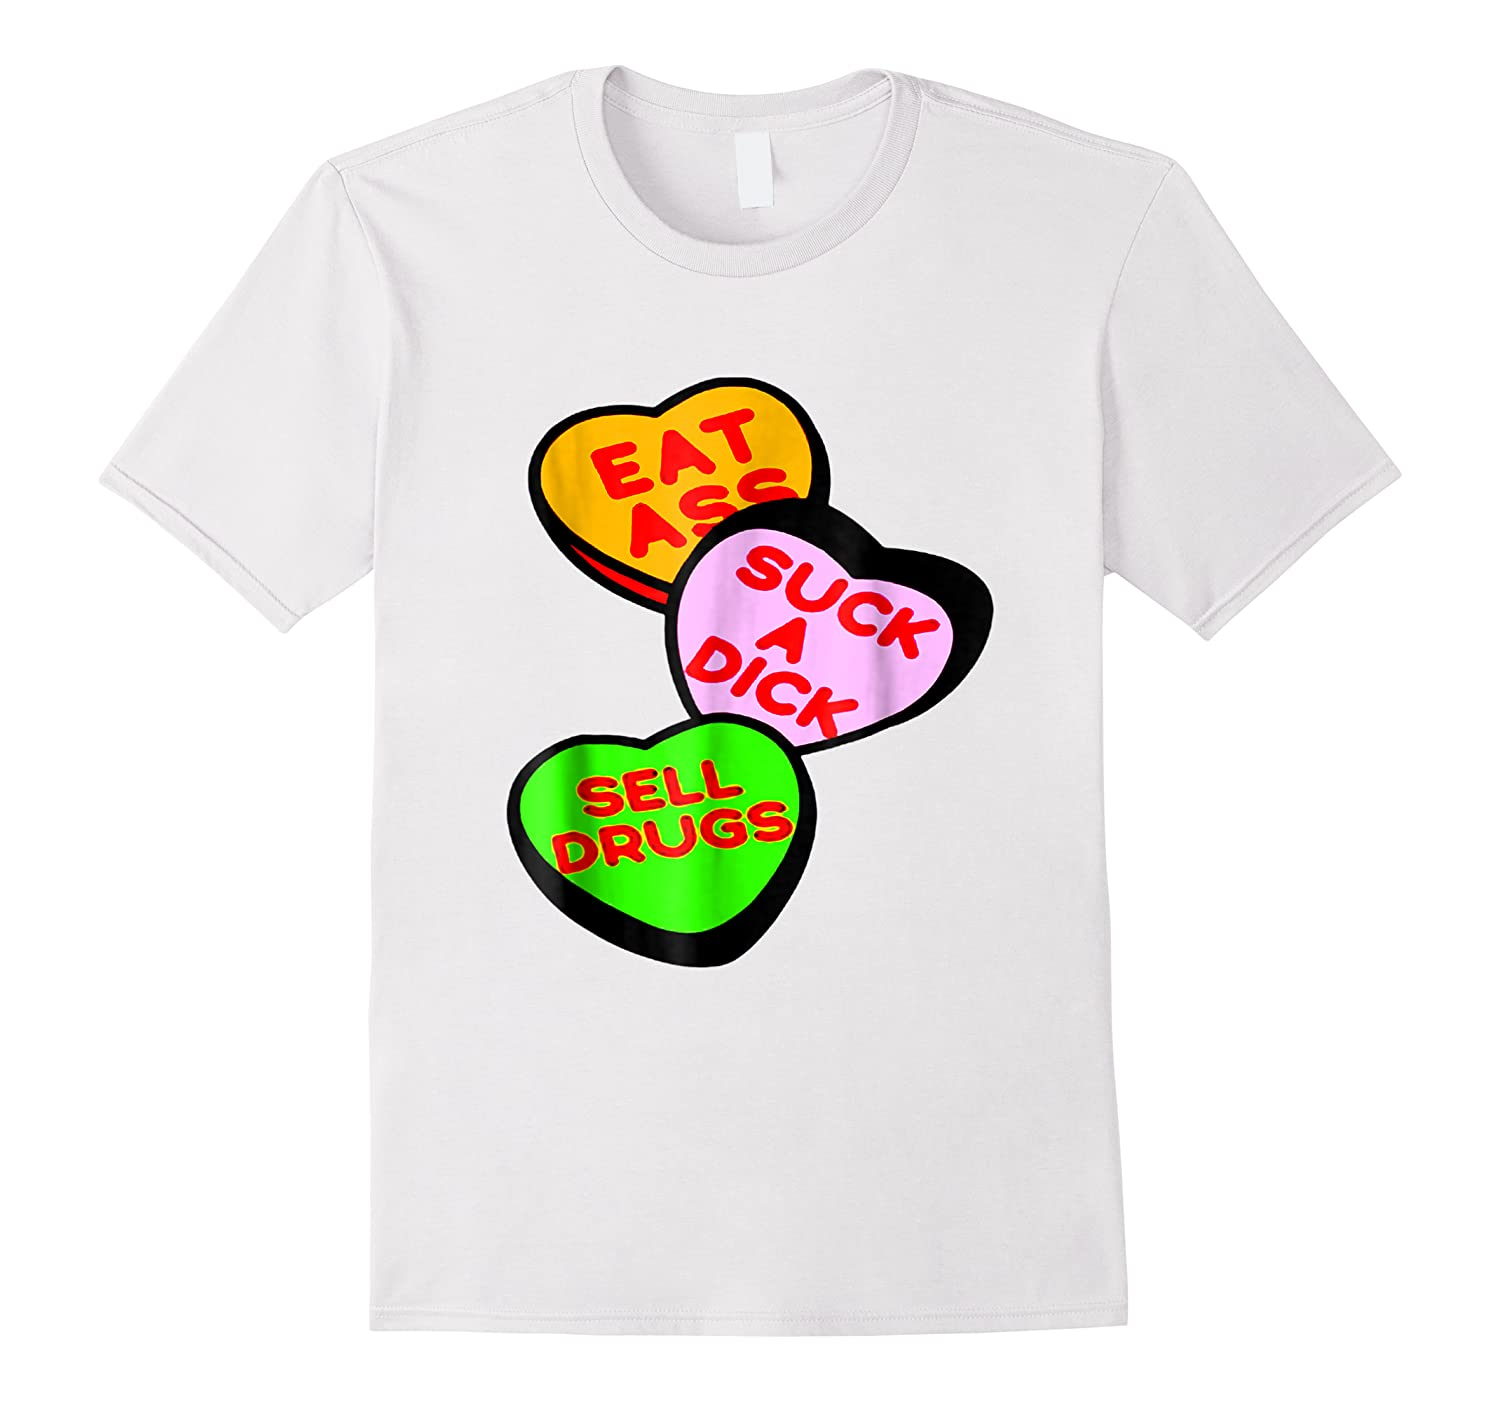 A Dick Sell Drugs Shirts